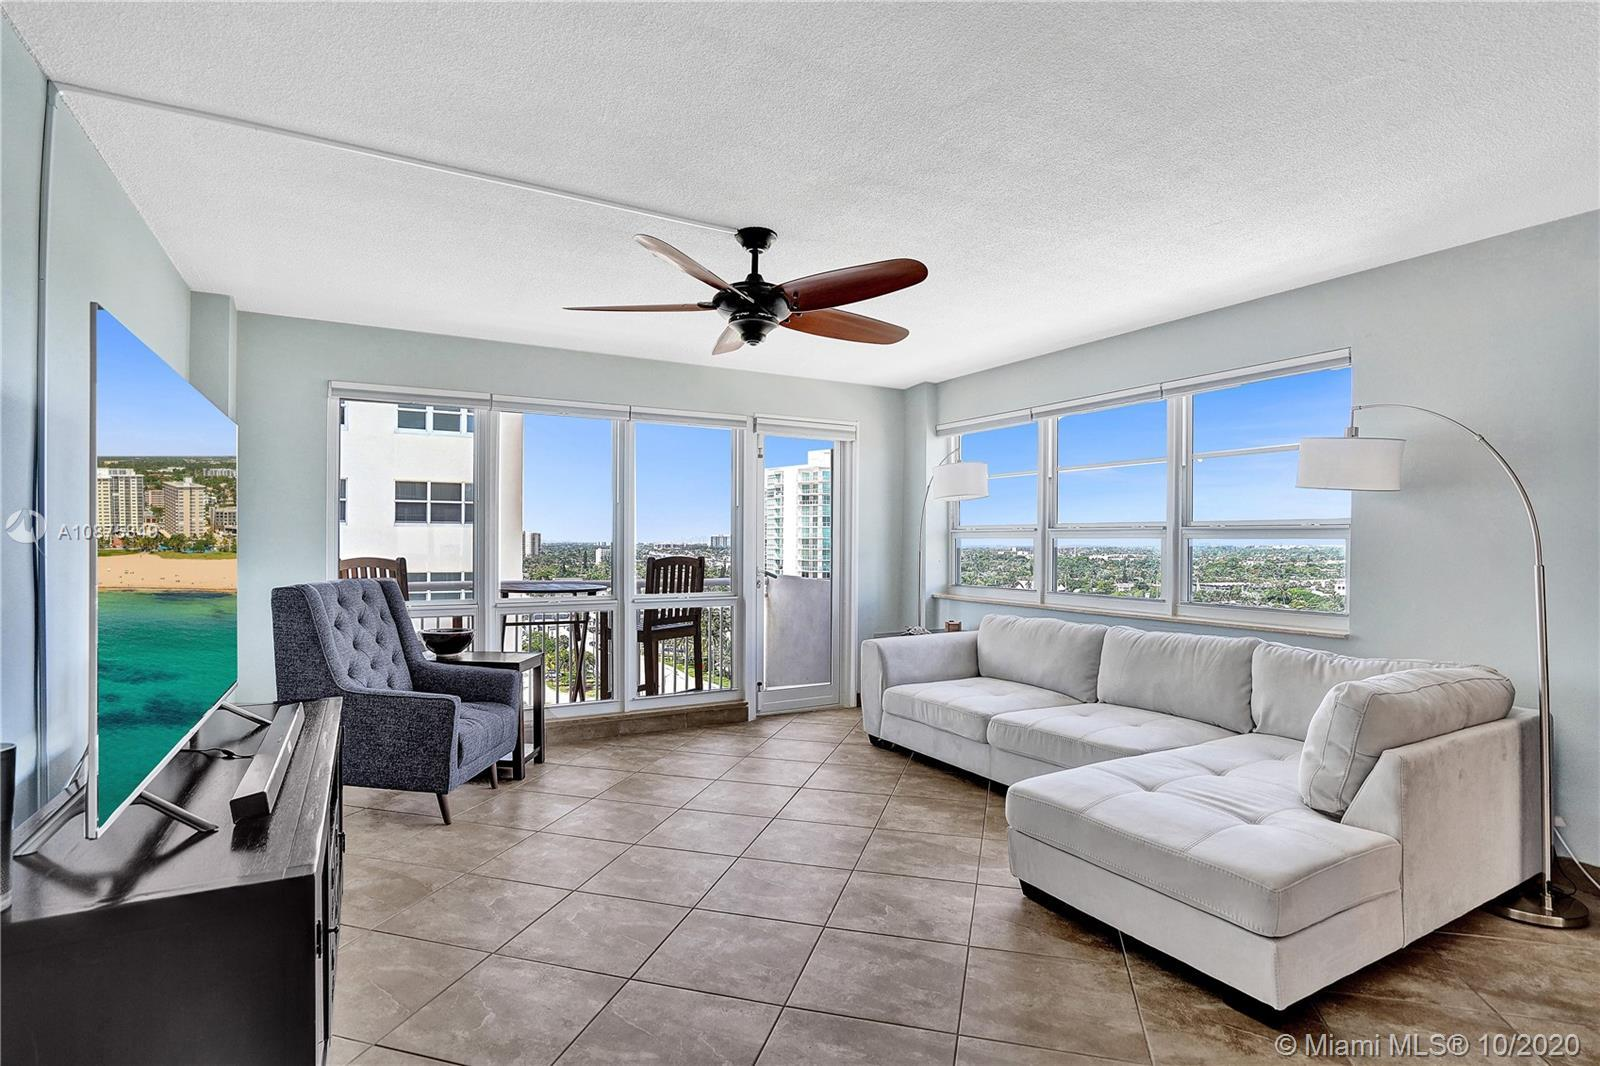 Discover the height of comfort in this sprawling seaside getaway in South Florida's picturesque and